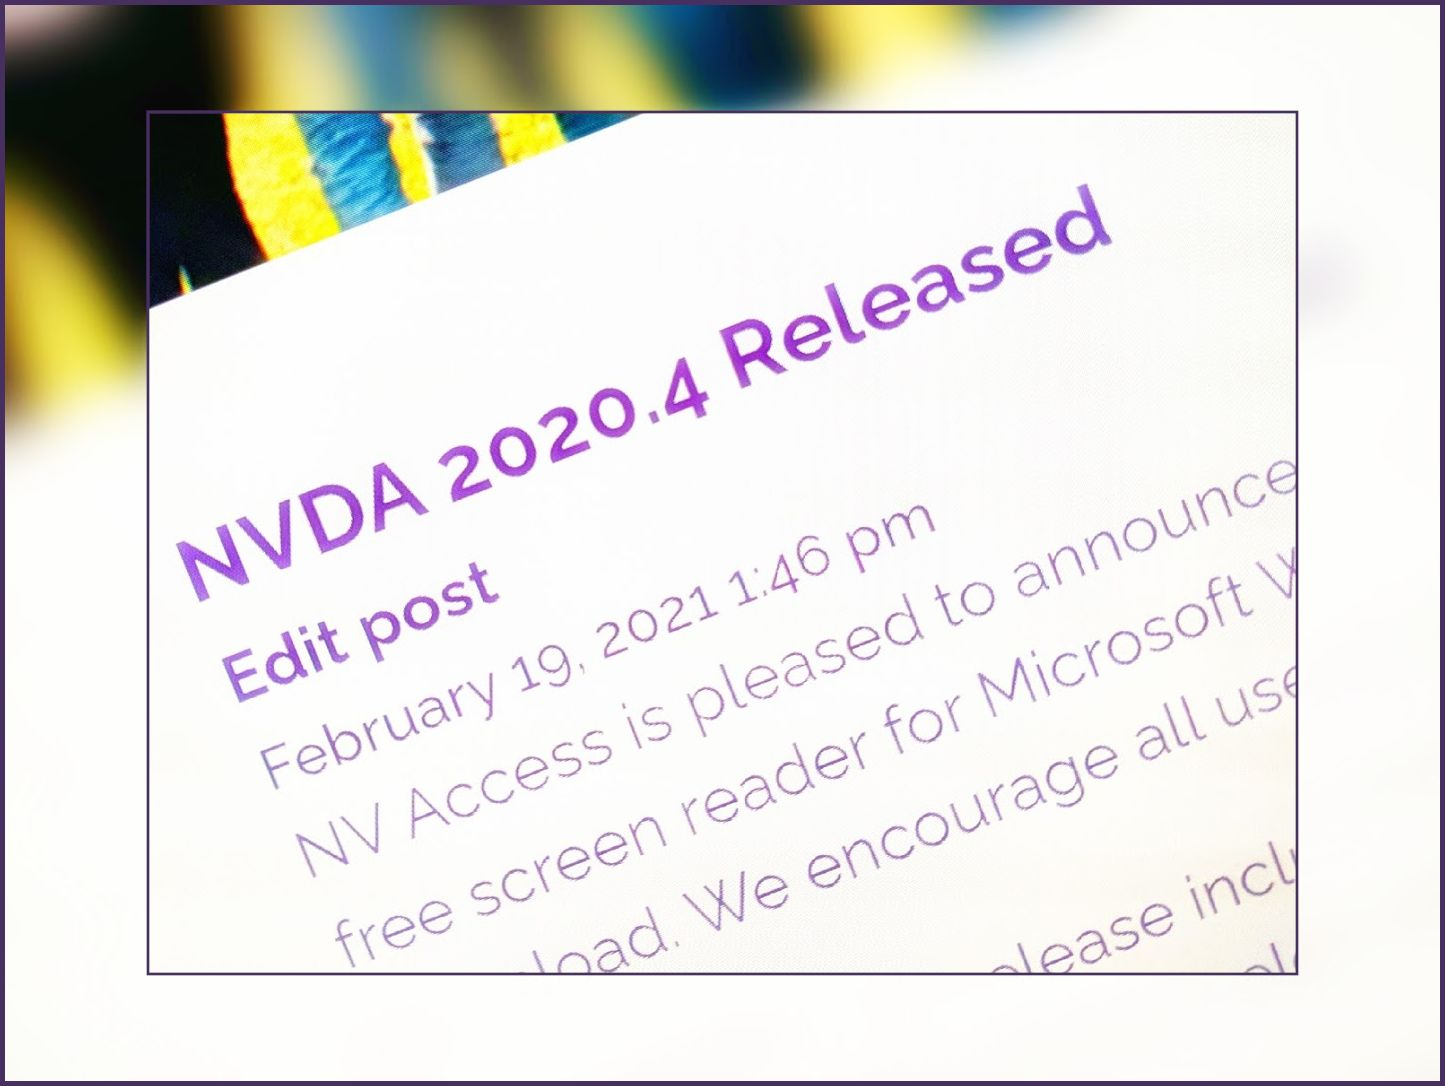 Image of 2020.4 release announcement, tilted on blurred background